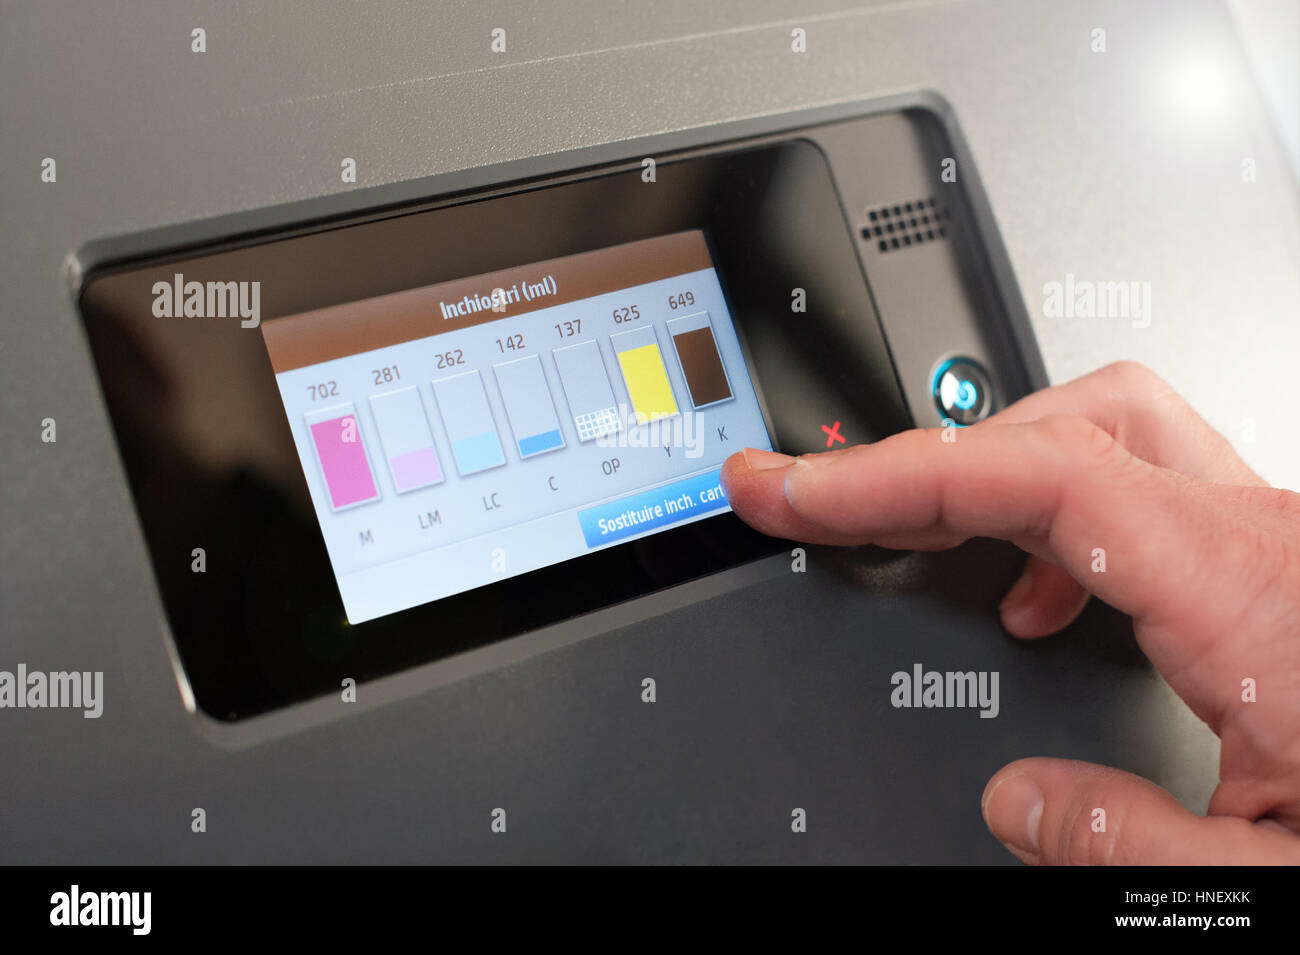 Man checking printer ink levels on a professional printer on a digital display in a print house - Stock Image